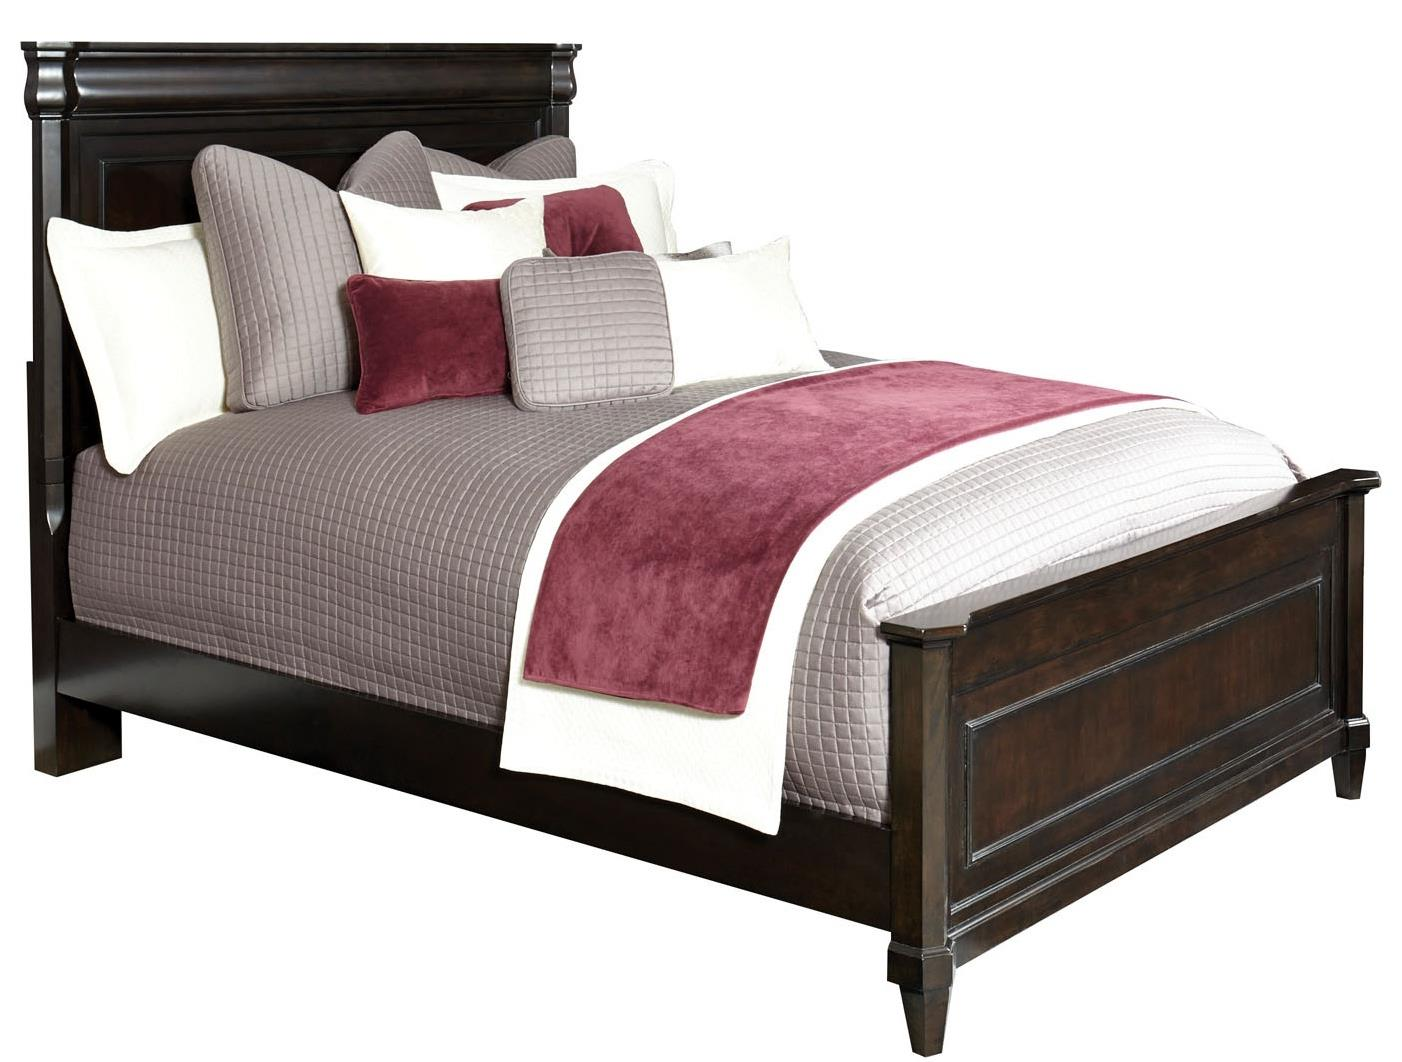 Broyhill Furniture Aryell King Panel Bed - Item Number: 4907-254+255+450